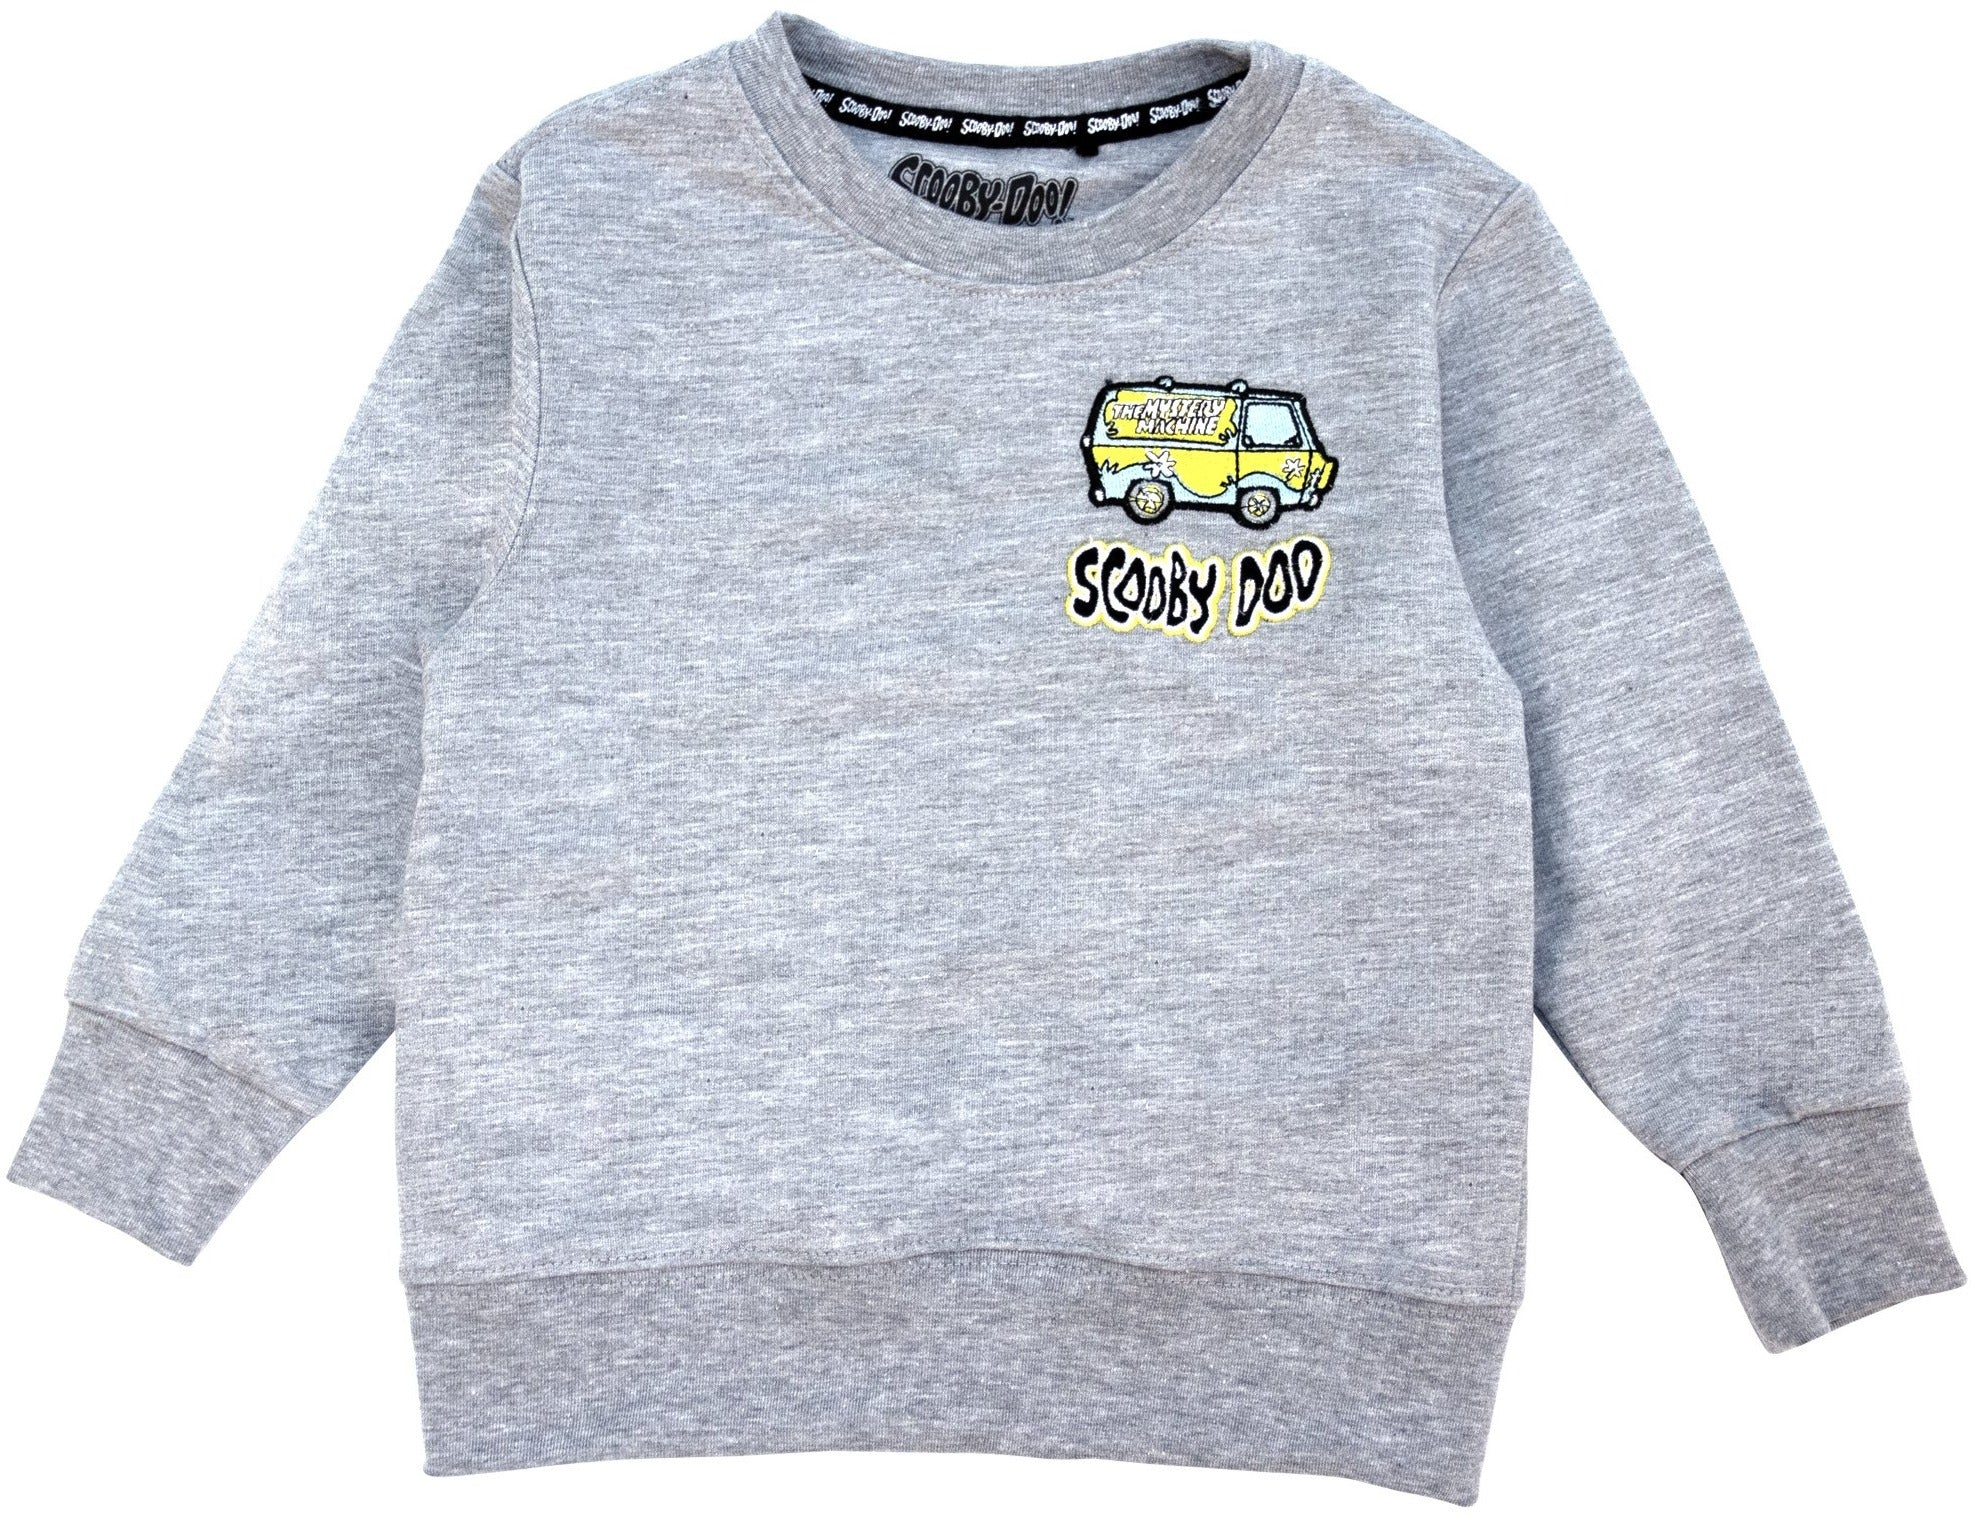 Warner Bros Sudadera Scooby Doo Color Gris Niño.